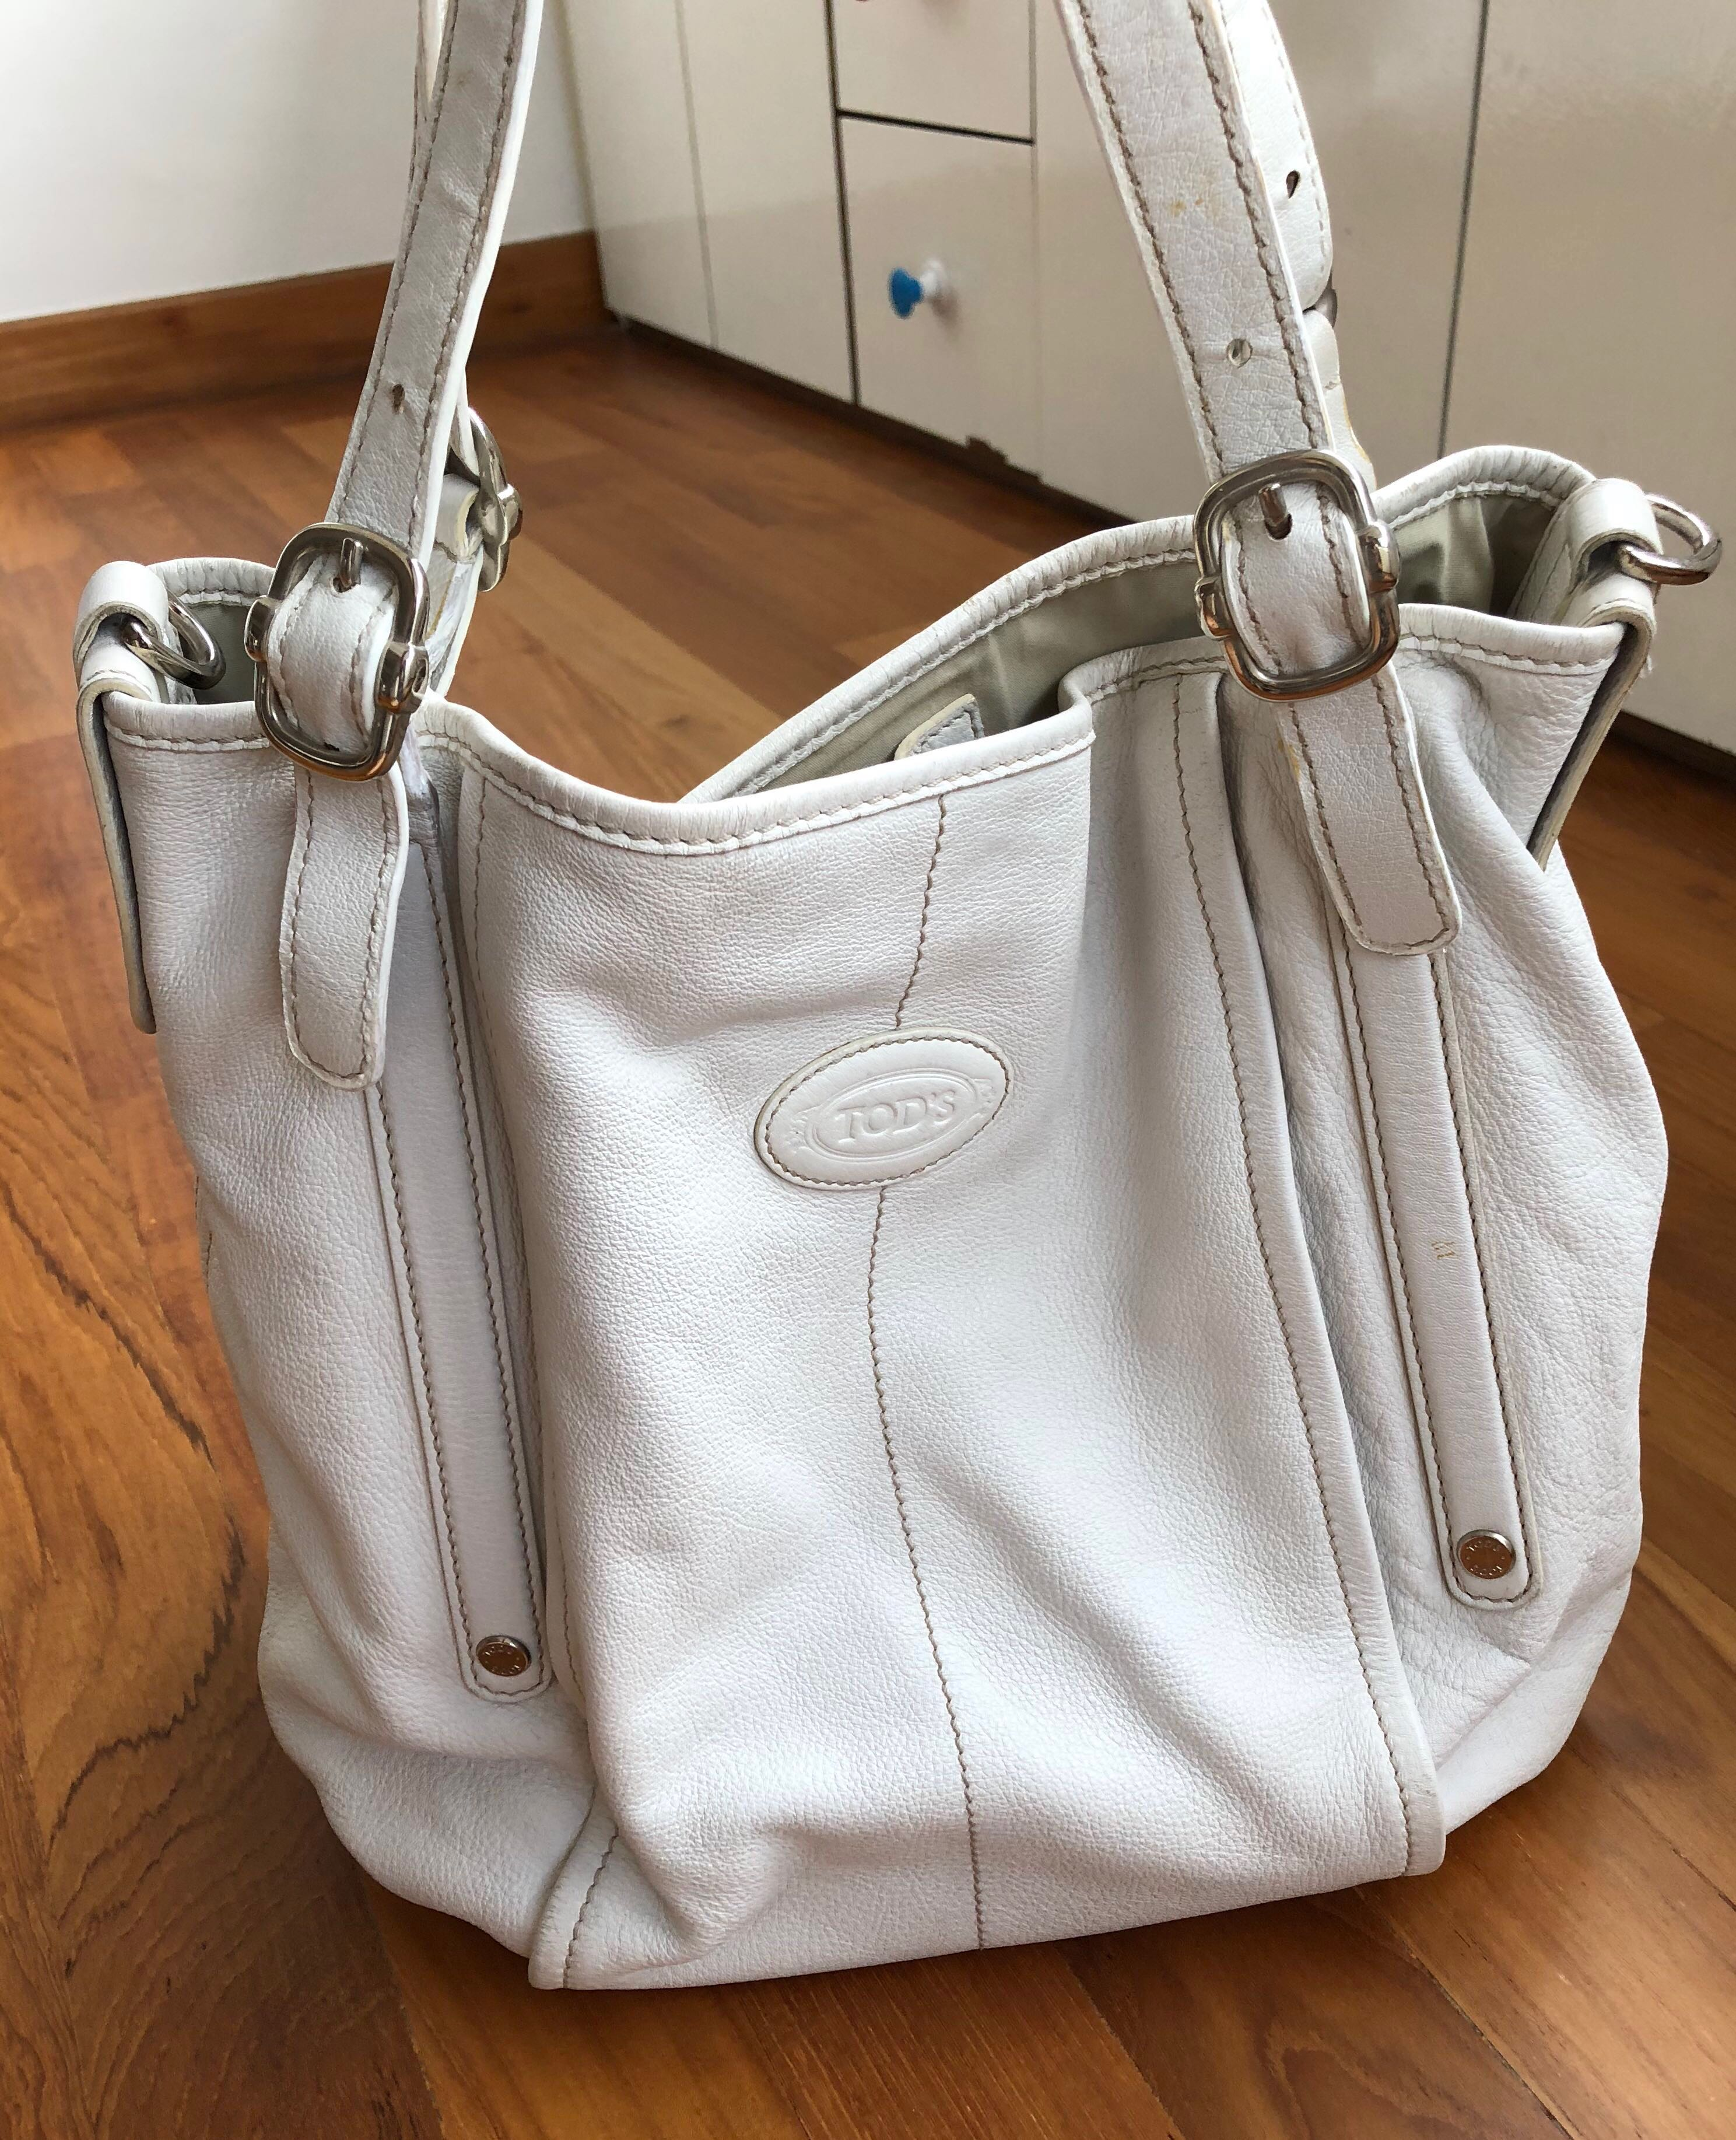 Tod s G-bag Shopper Tote Bag. Authentic. Cream White leather. Large size. ea1ba11be0176